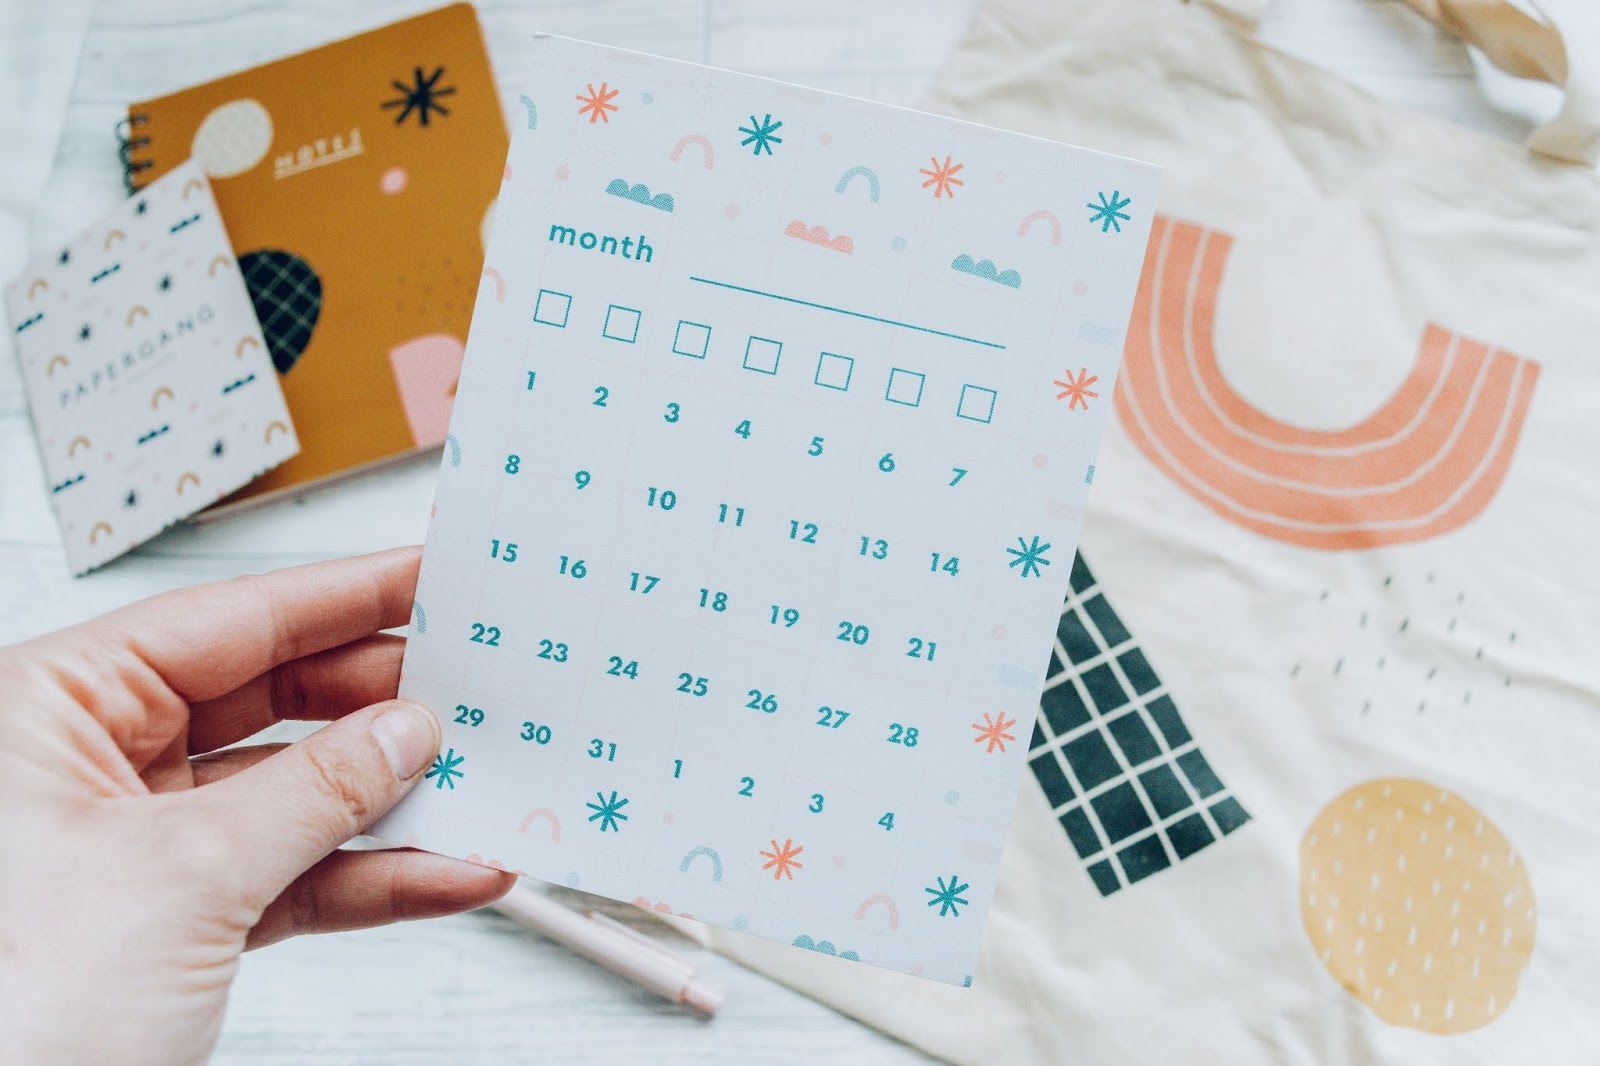 A blank month calendar card with geometric shapes all over